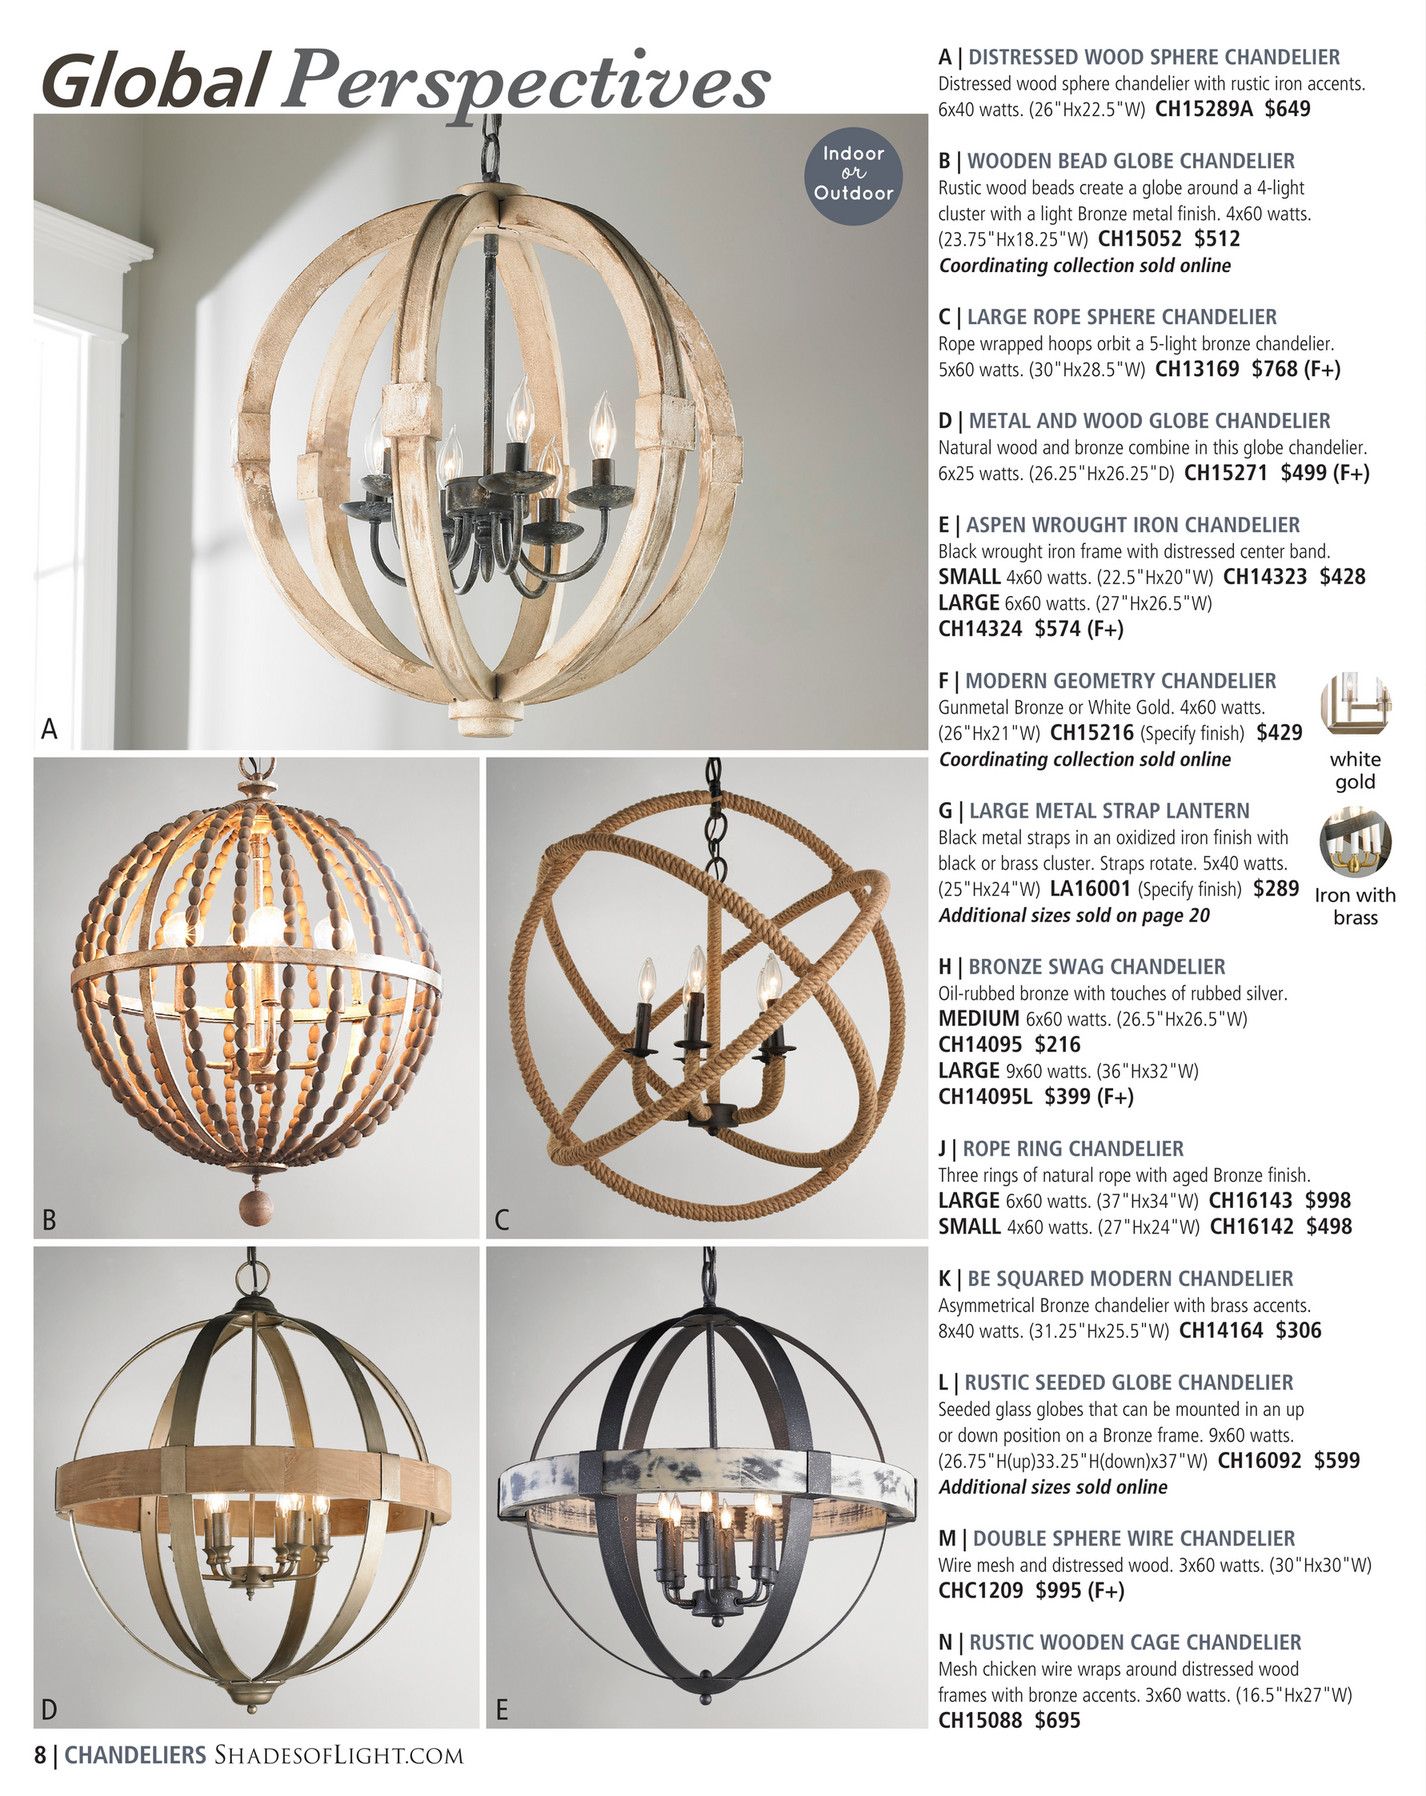 White washed wood sphere chandelier chandeliers by shades of light - Ch15088 695